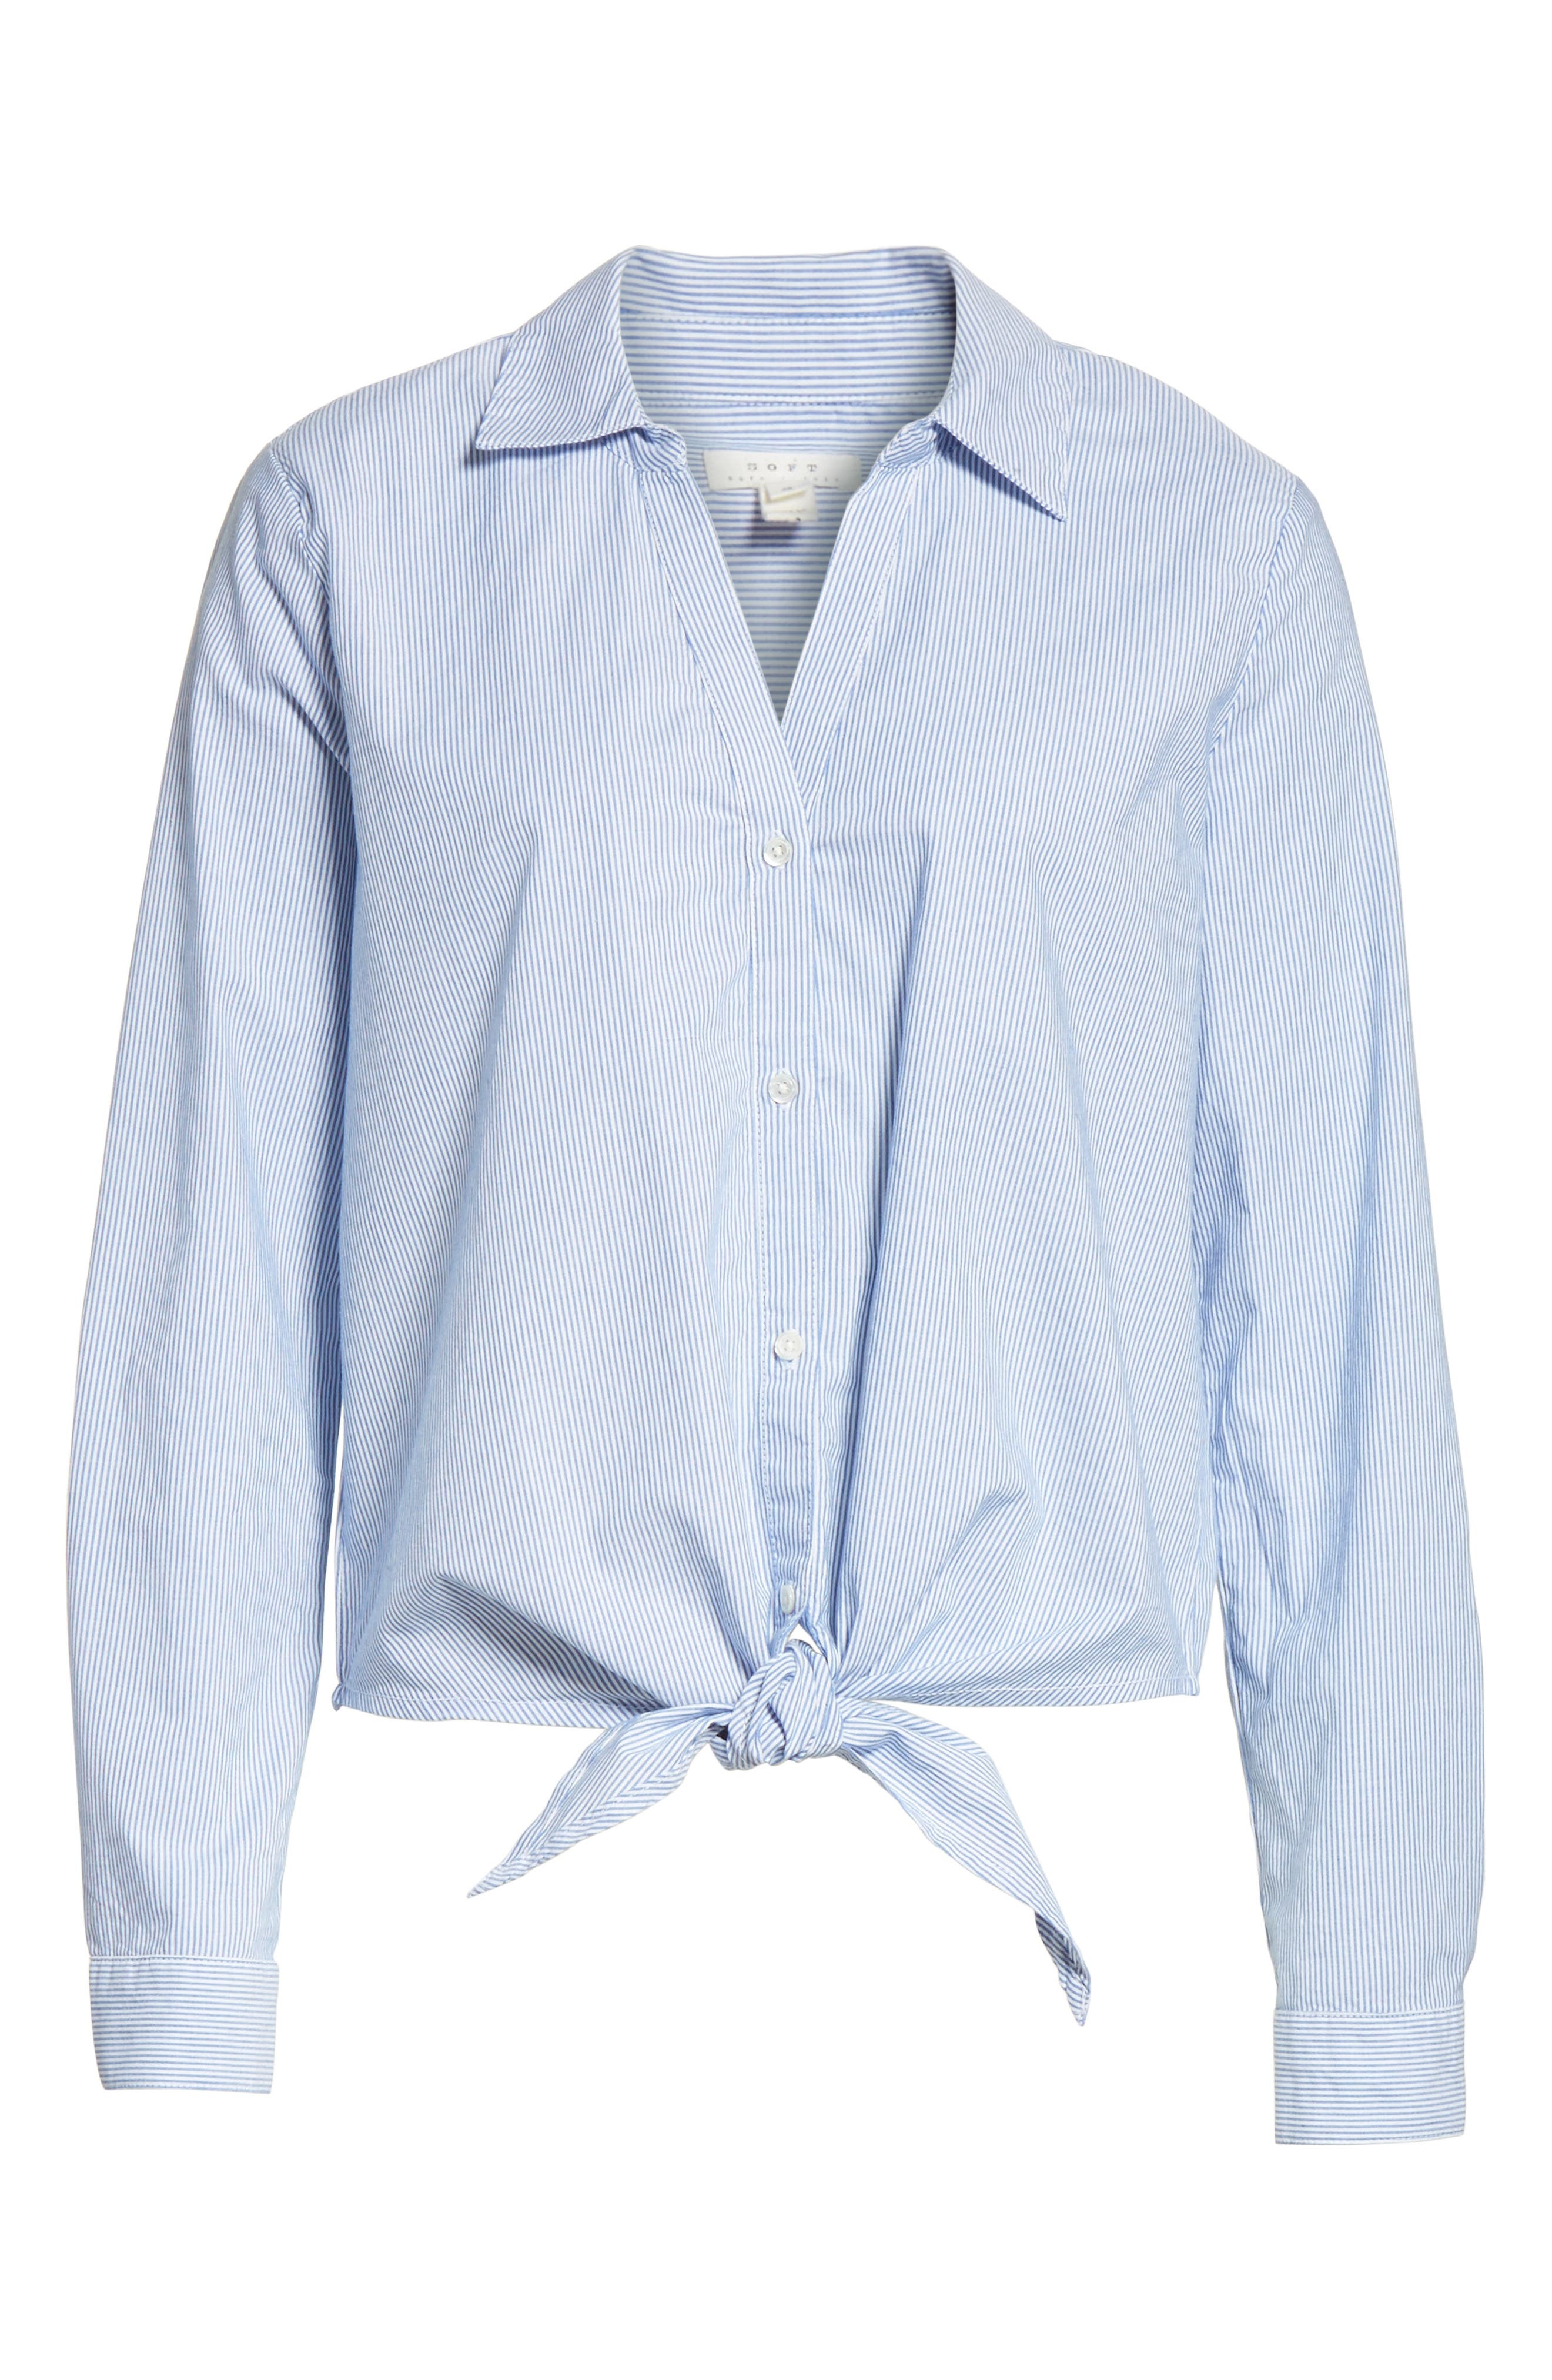 Crysta Tie Front Shirt,                             Alternate thumbnail 6, color,                             473